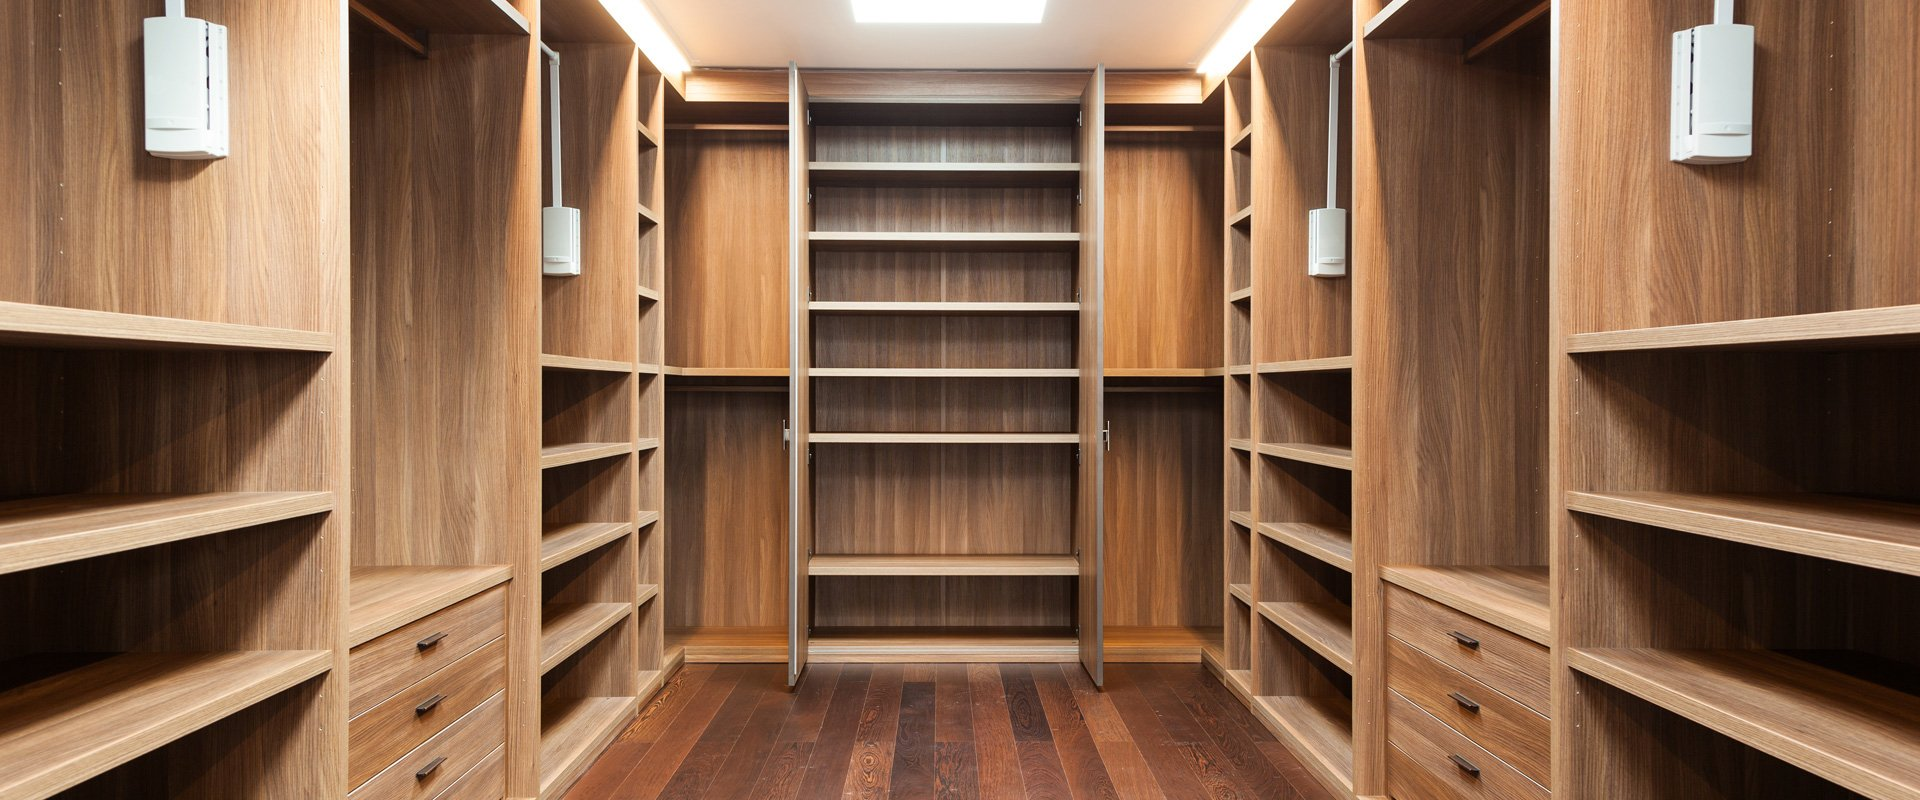 How to design a Walk in Wardrobe